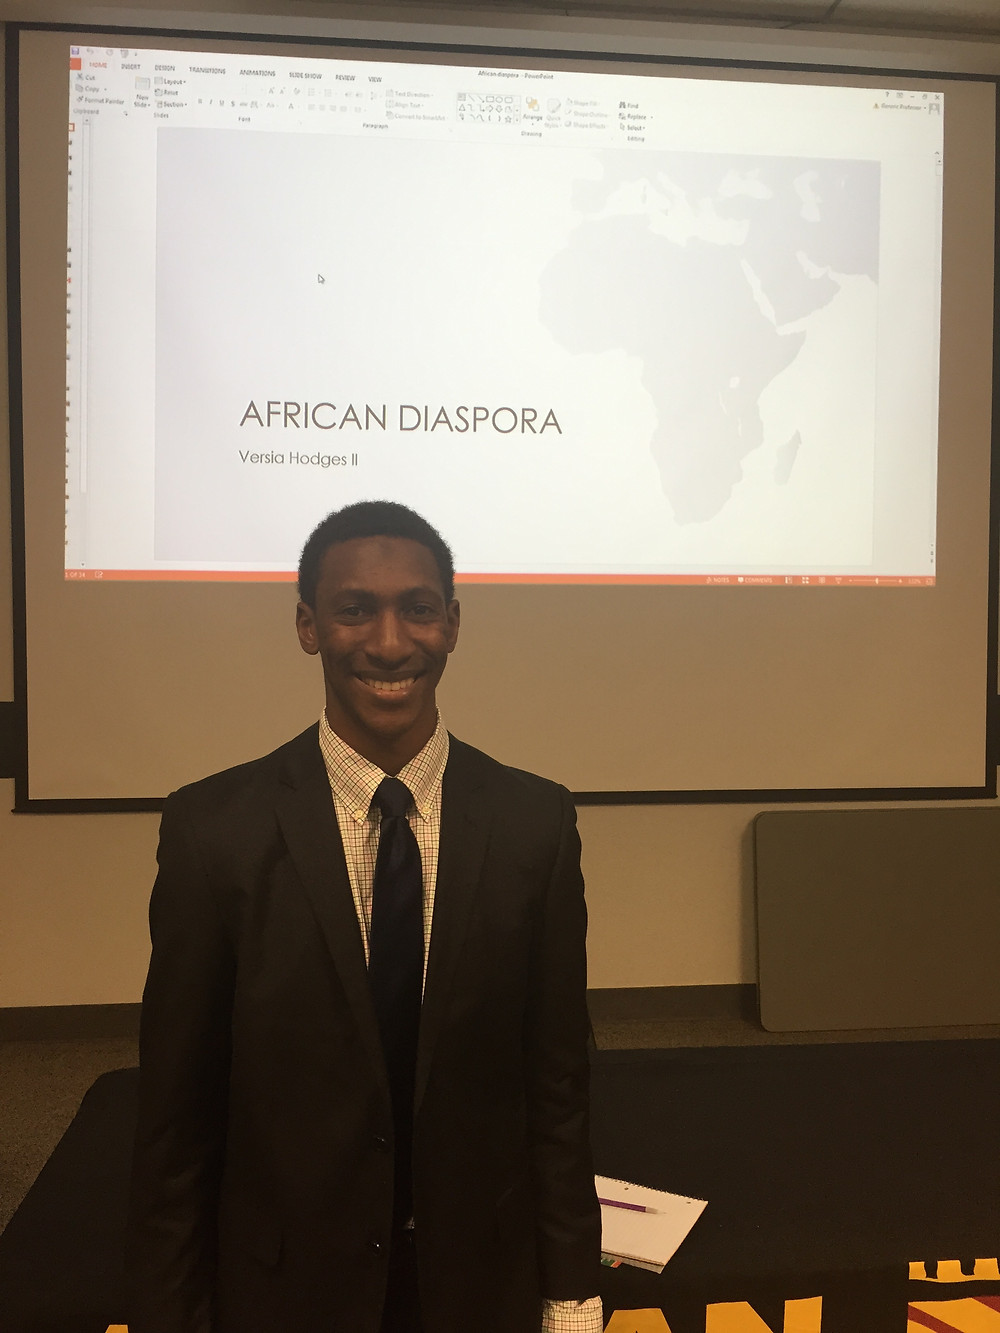 Versia Hodges II presenting on African Diaspora, Photo taken by Emiliana Walker